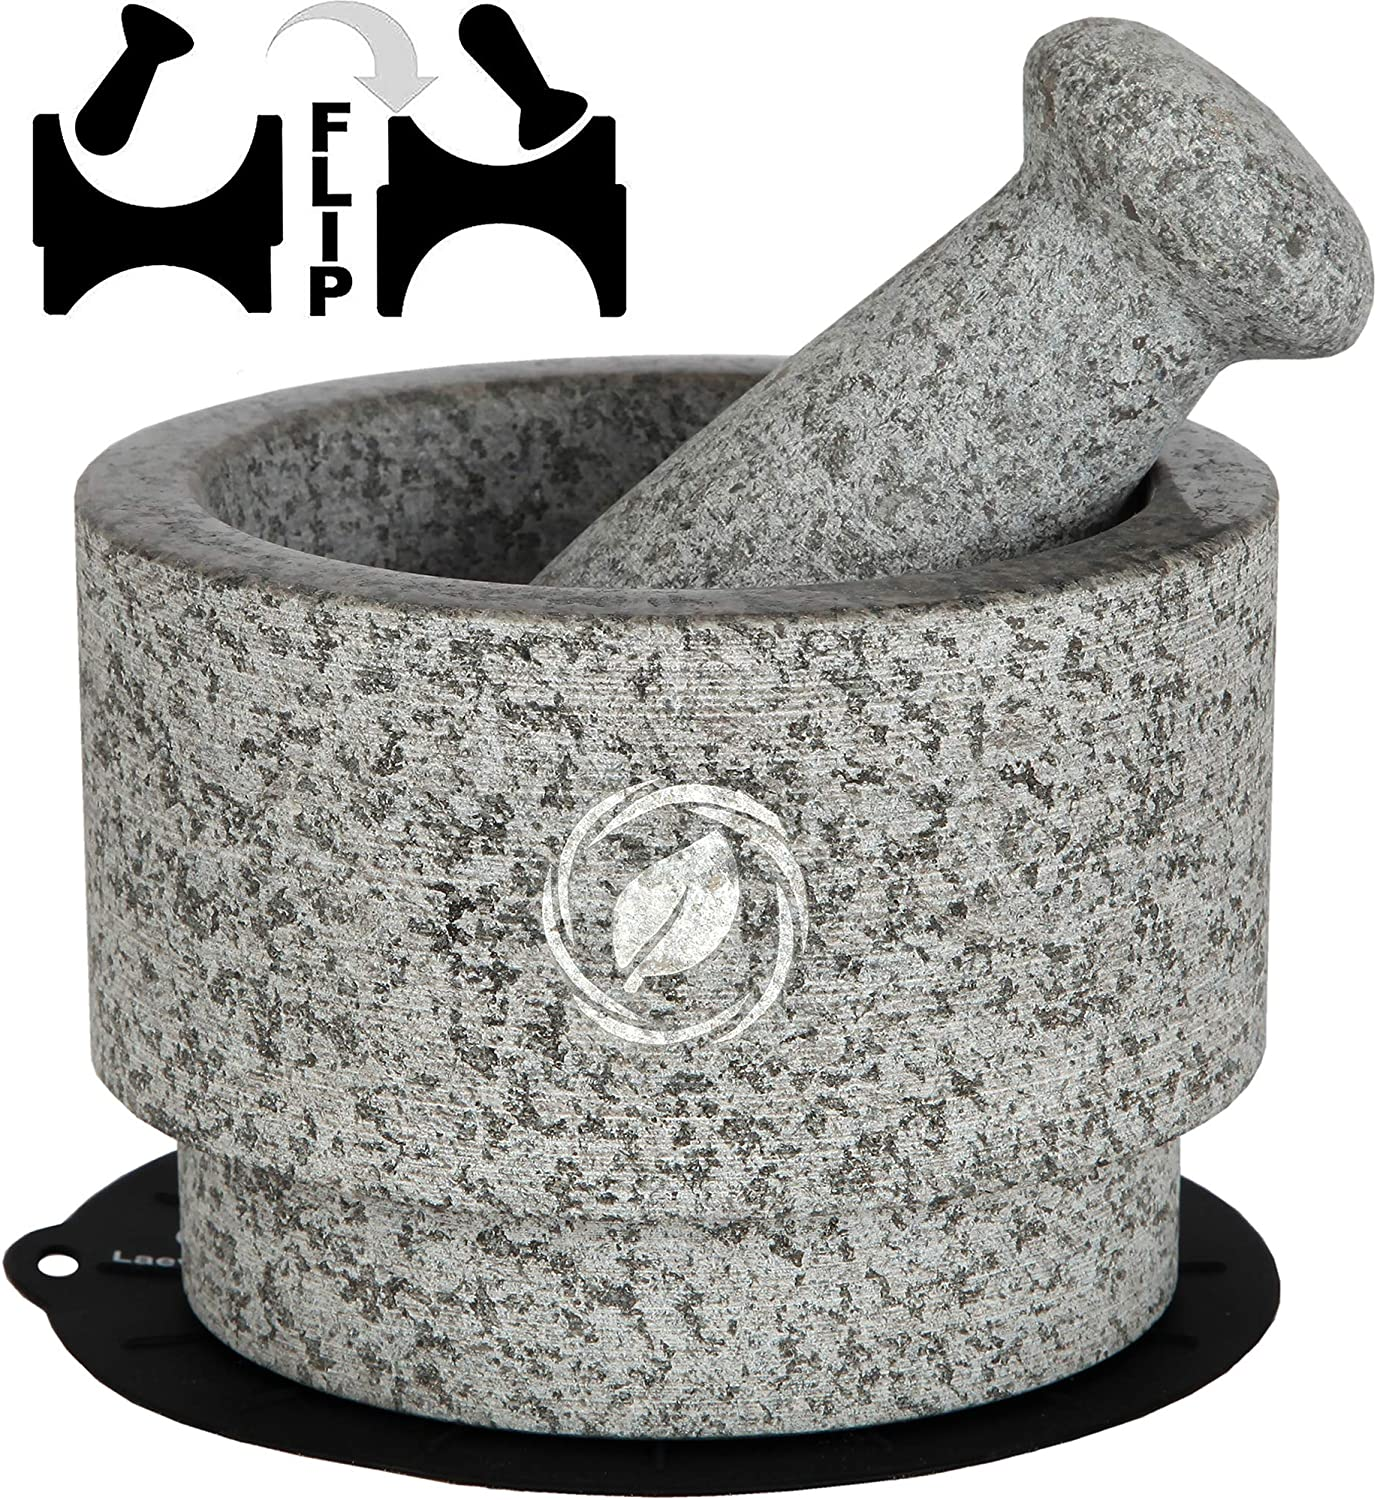 Mortar and Pestle Set Granite - 5.6 Inch, 2.2 Cup - Unique Double Sided - Pestle and Mortar Bowl Solid Stone Grinder - Guacamole Mortar and Pestle Large - INCLUDED: Silicone Lid/Mat and Spoon